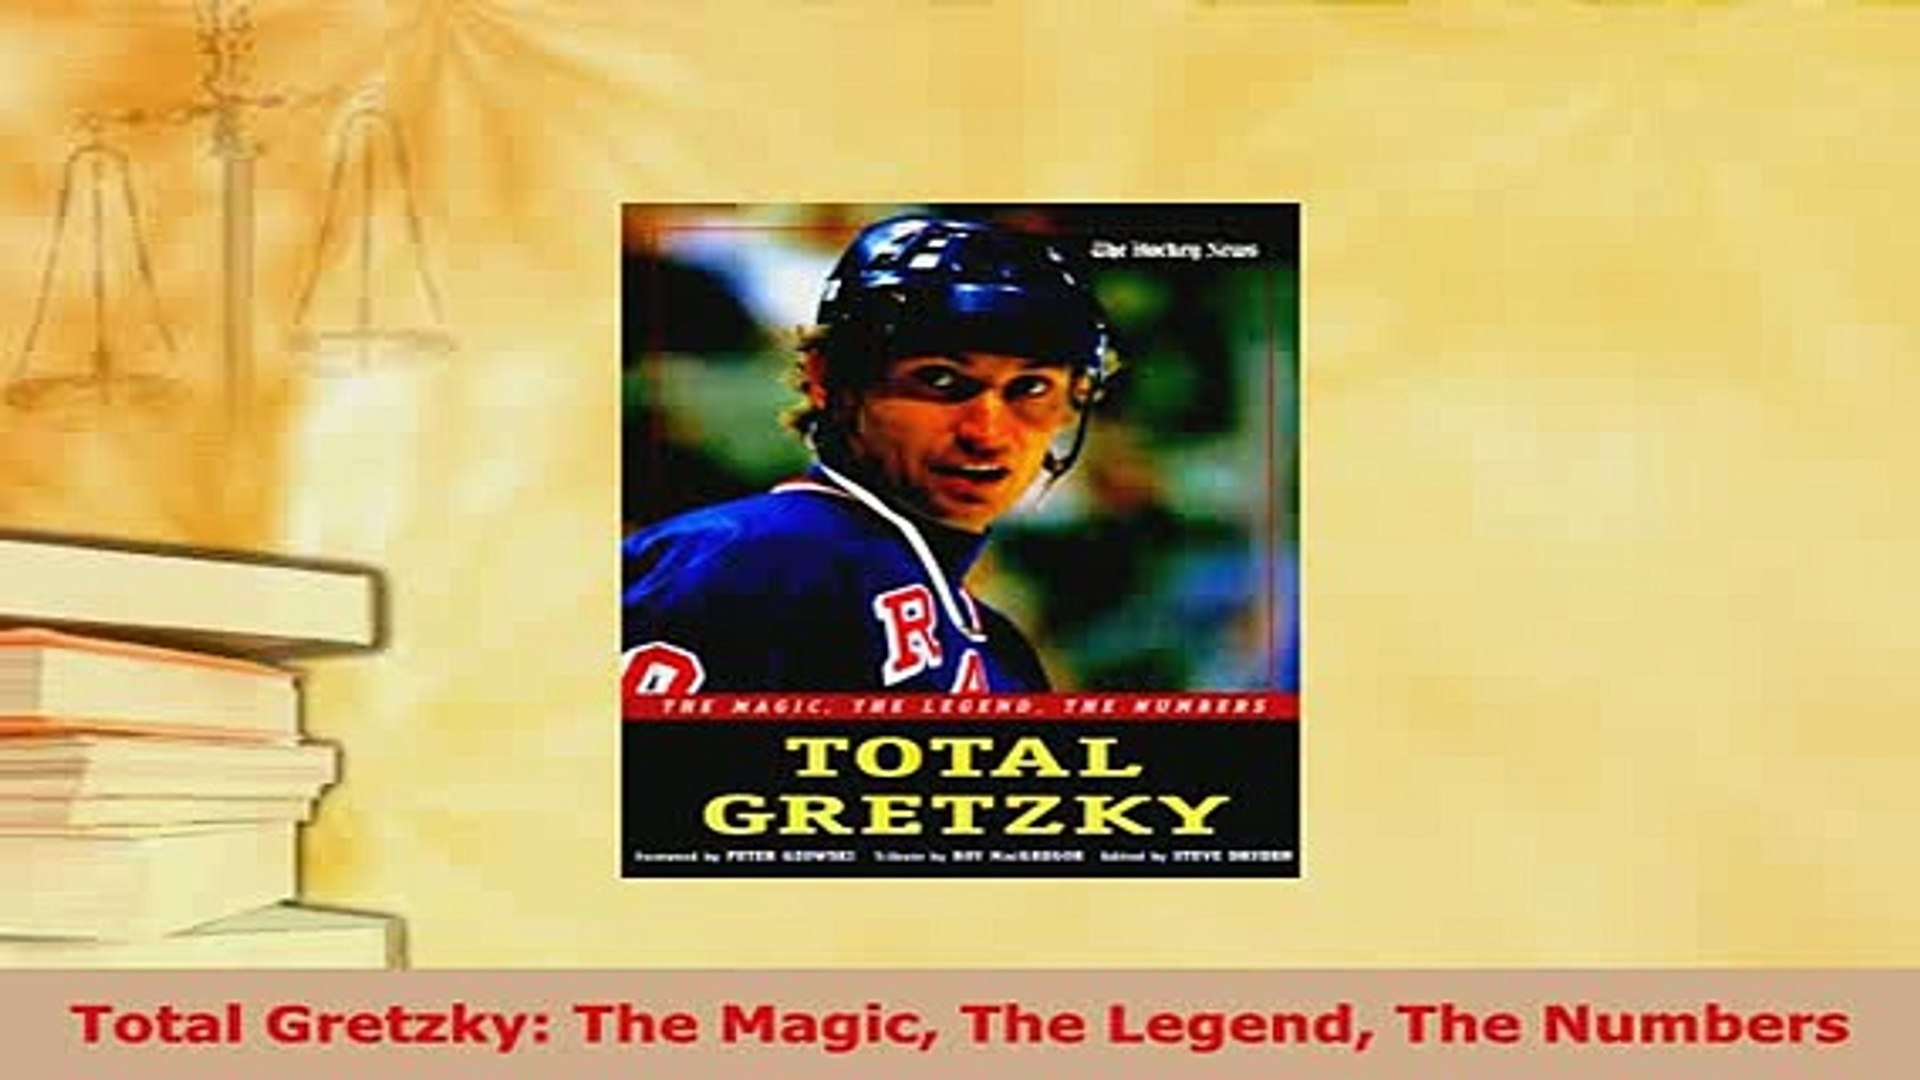 Total Gretzky The Numbers The Legend The Magic